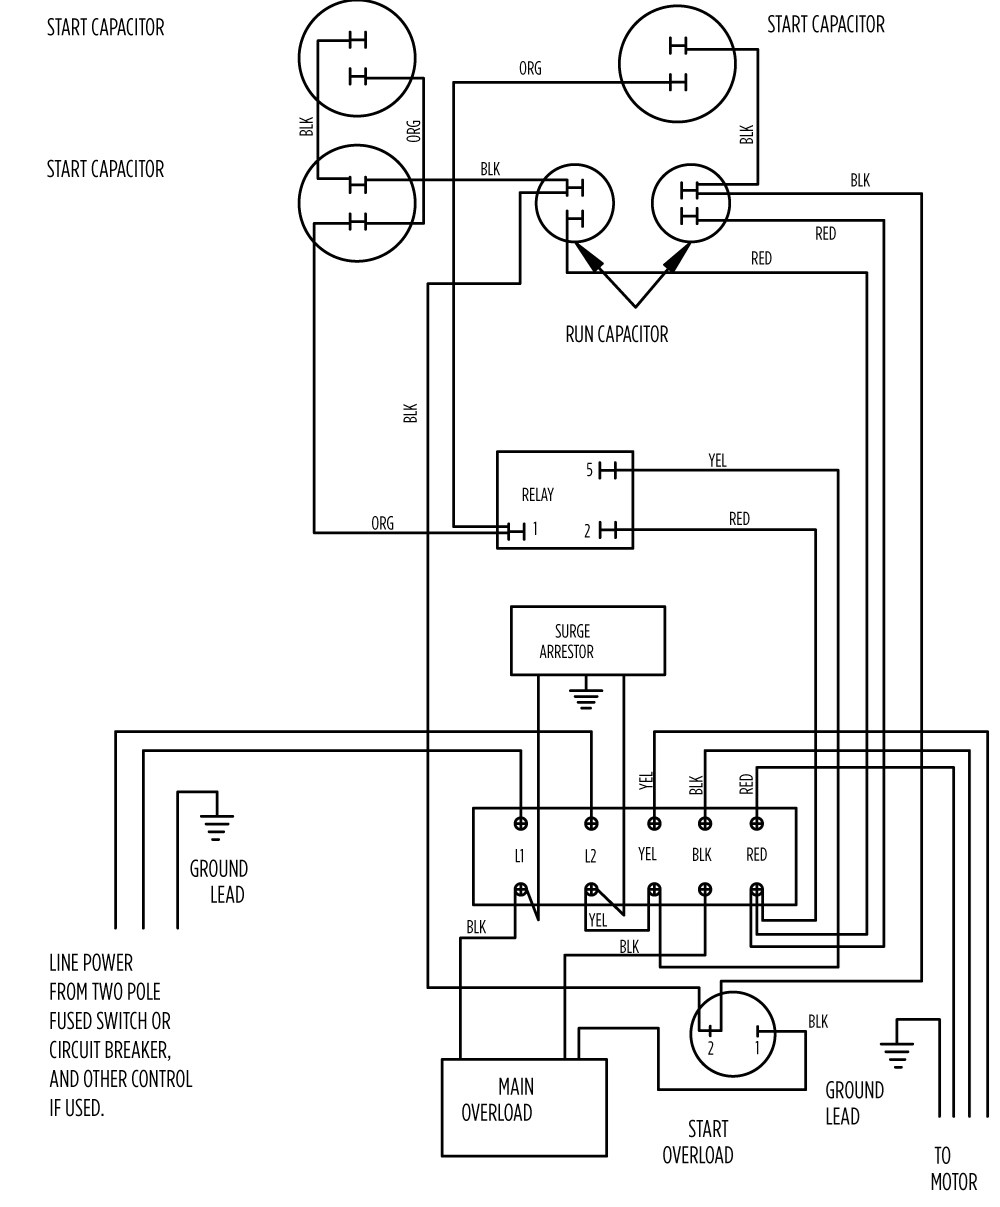 aim manual page 57 single phase motors and controls motor Slant Fin Boiler Wiring Diagram 10 hp standard 282 202 9210 or 282 202 9230